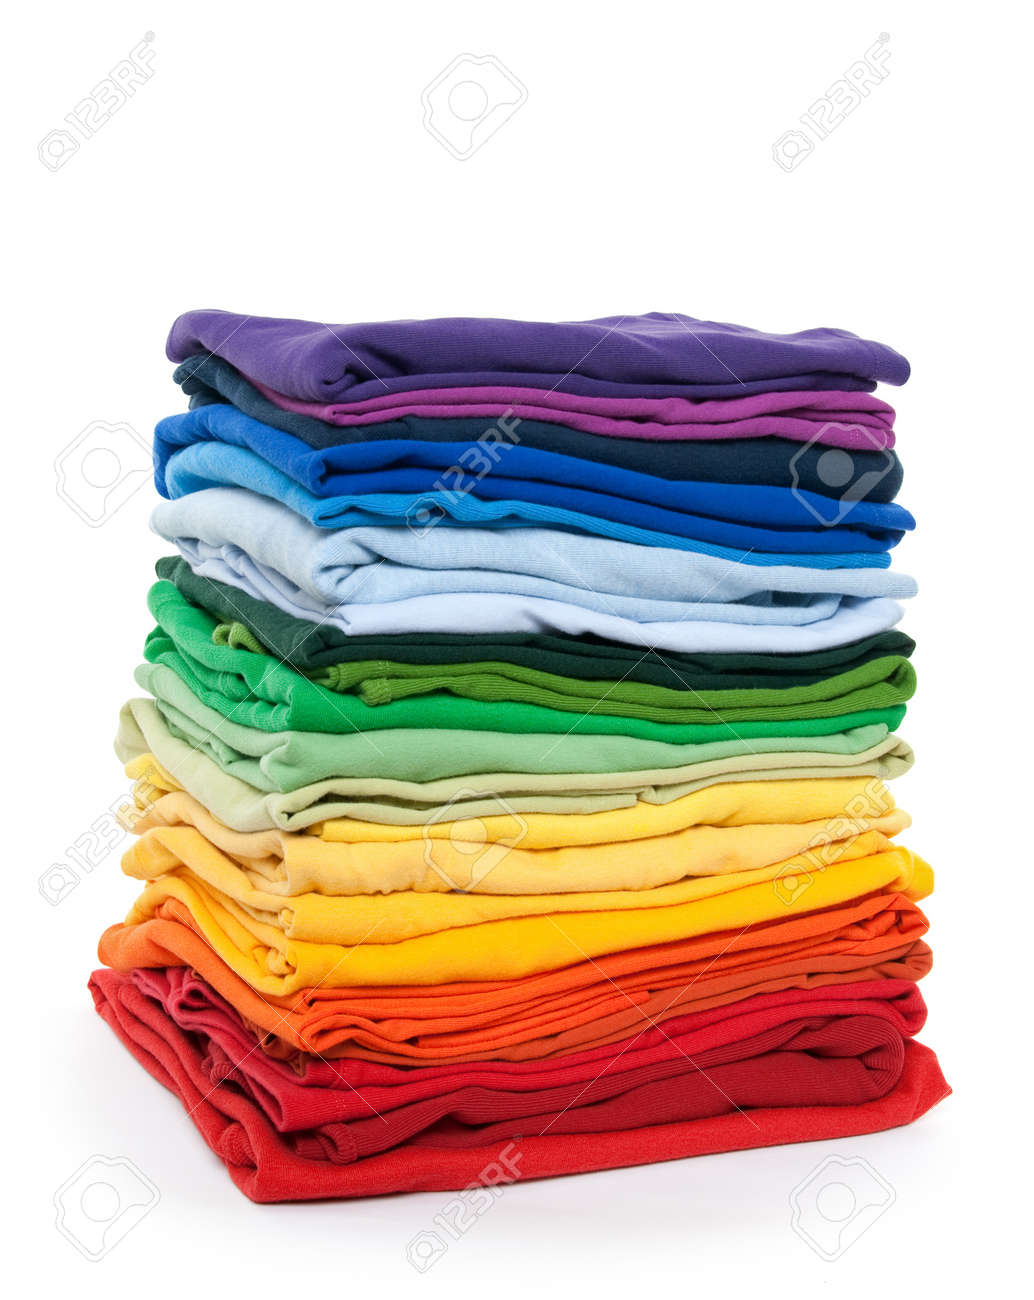 Rainbow clothes pile. Bright folded clothes on white background. Stock Photo - 9127307